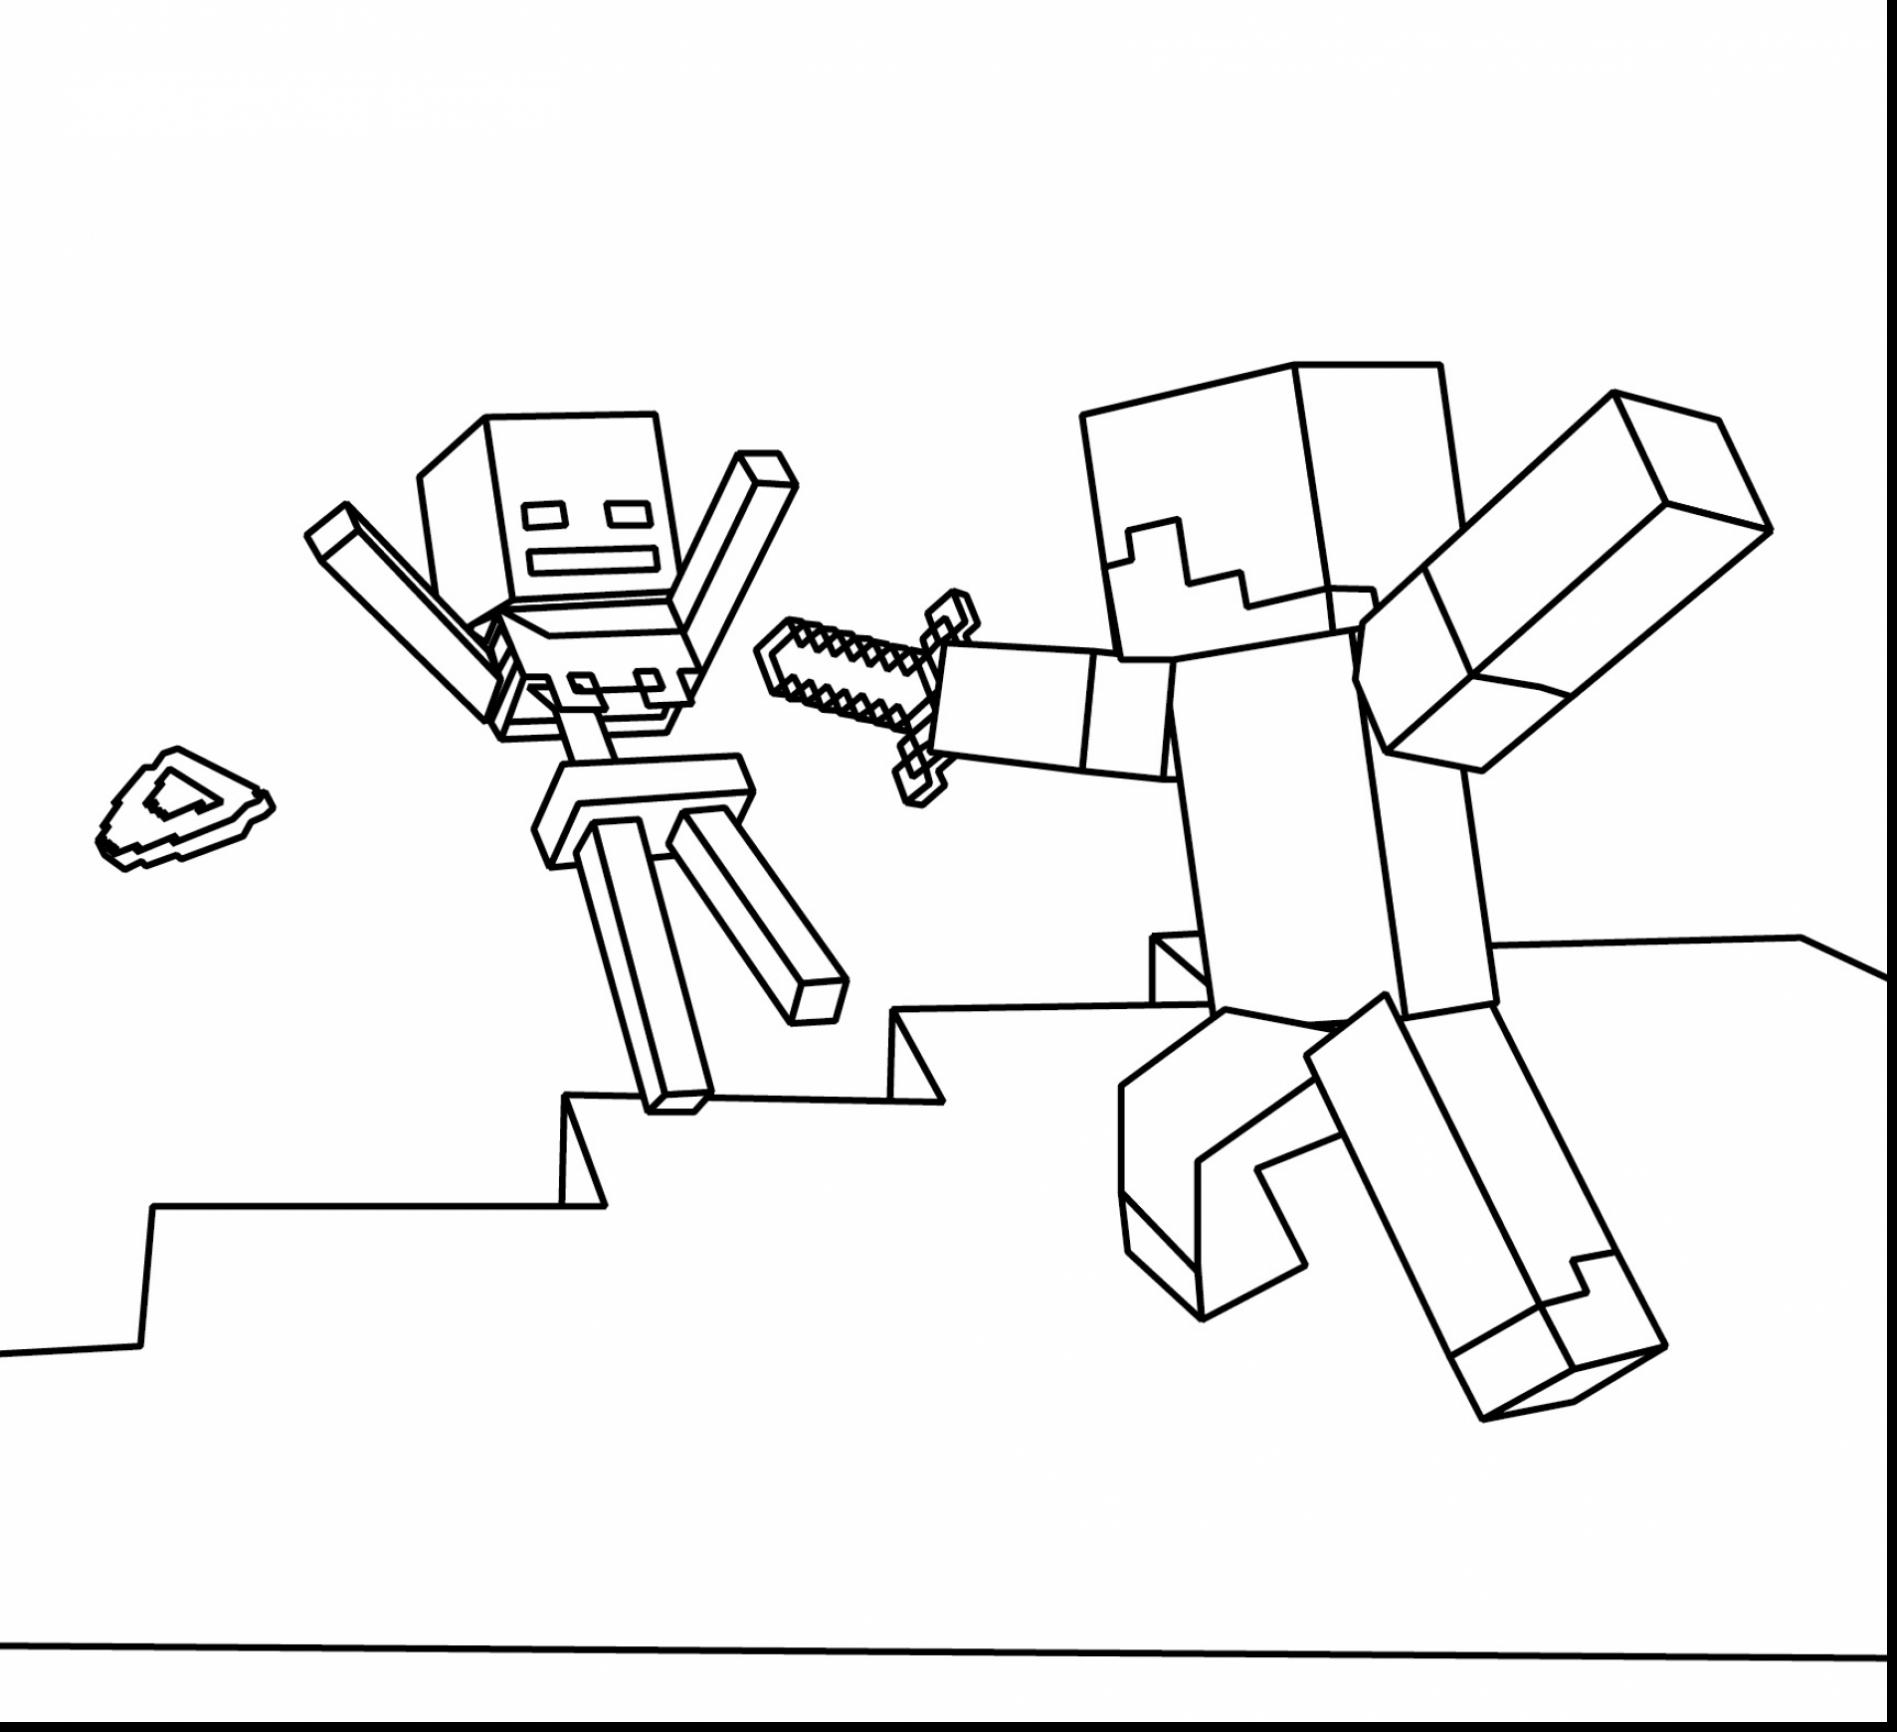 creeper coloring pages 24 minecraft creeper coloring page in 2020 coloring creeper coloring pages